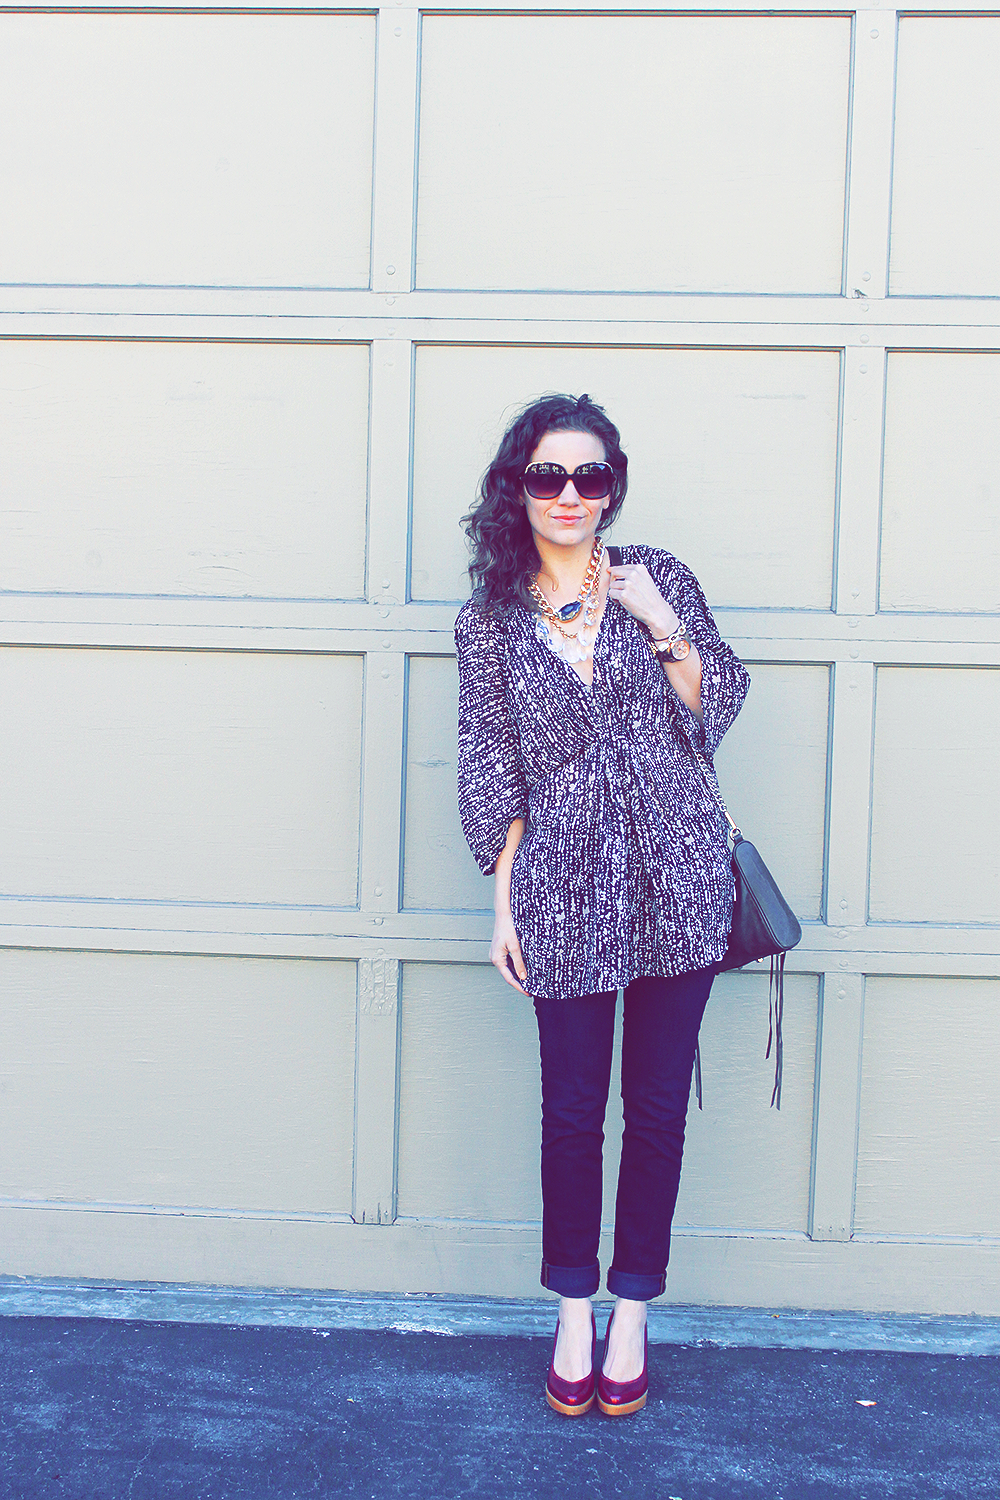 H&M black and tan kimono top - boho looks 2013 - undeniable style